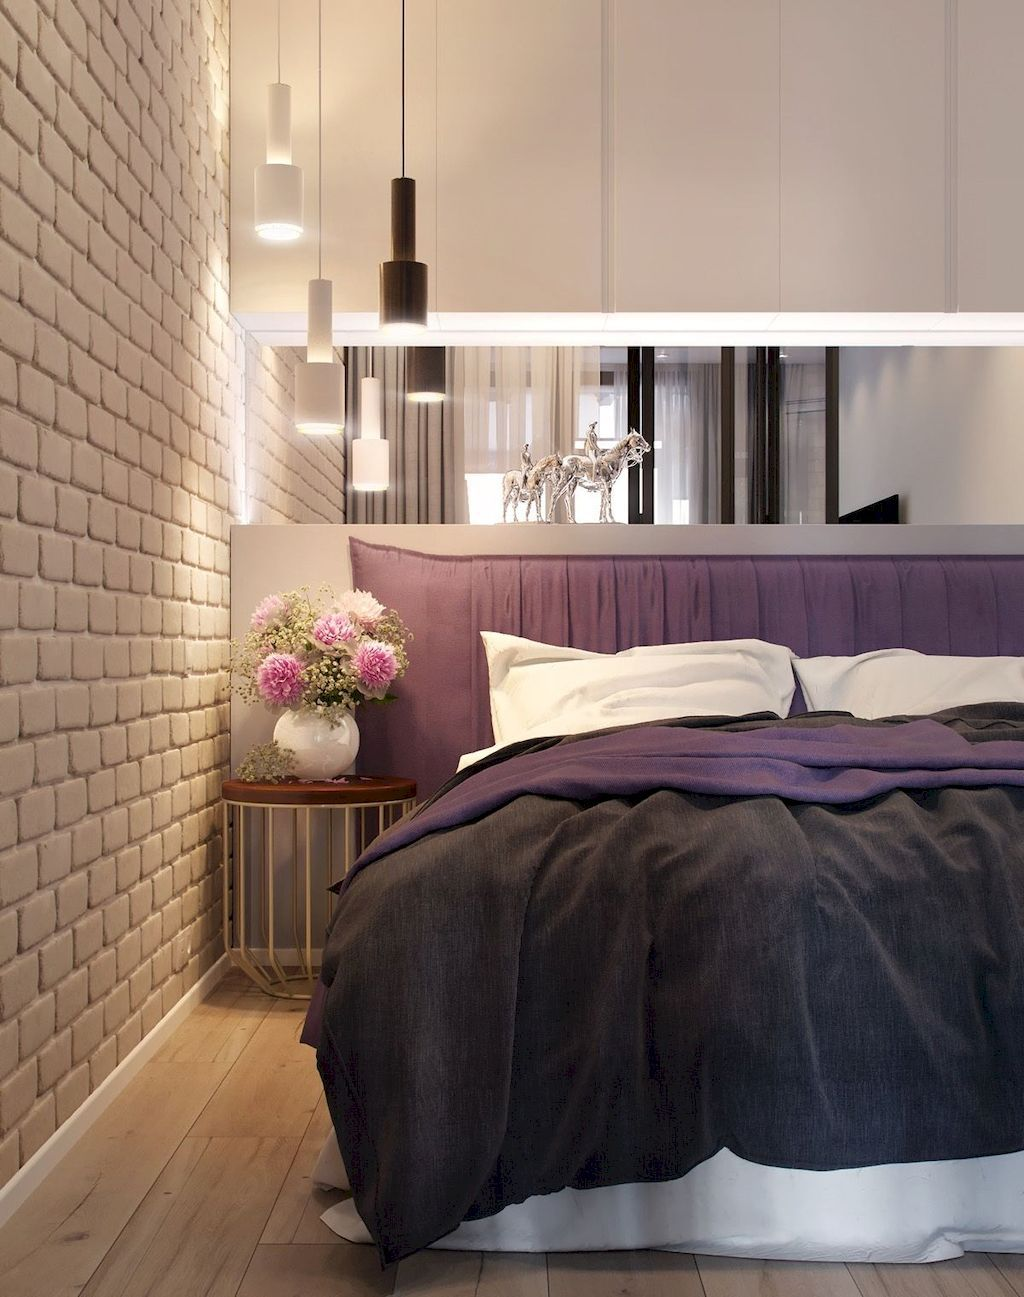 couples apartment decorating ideas on a budget apartments